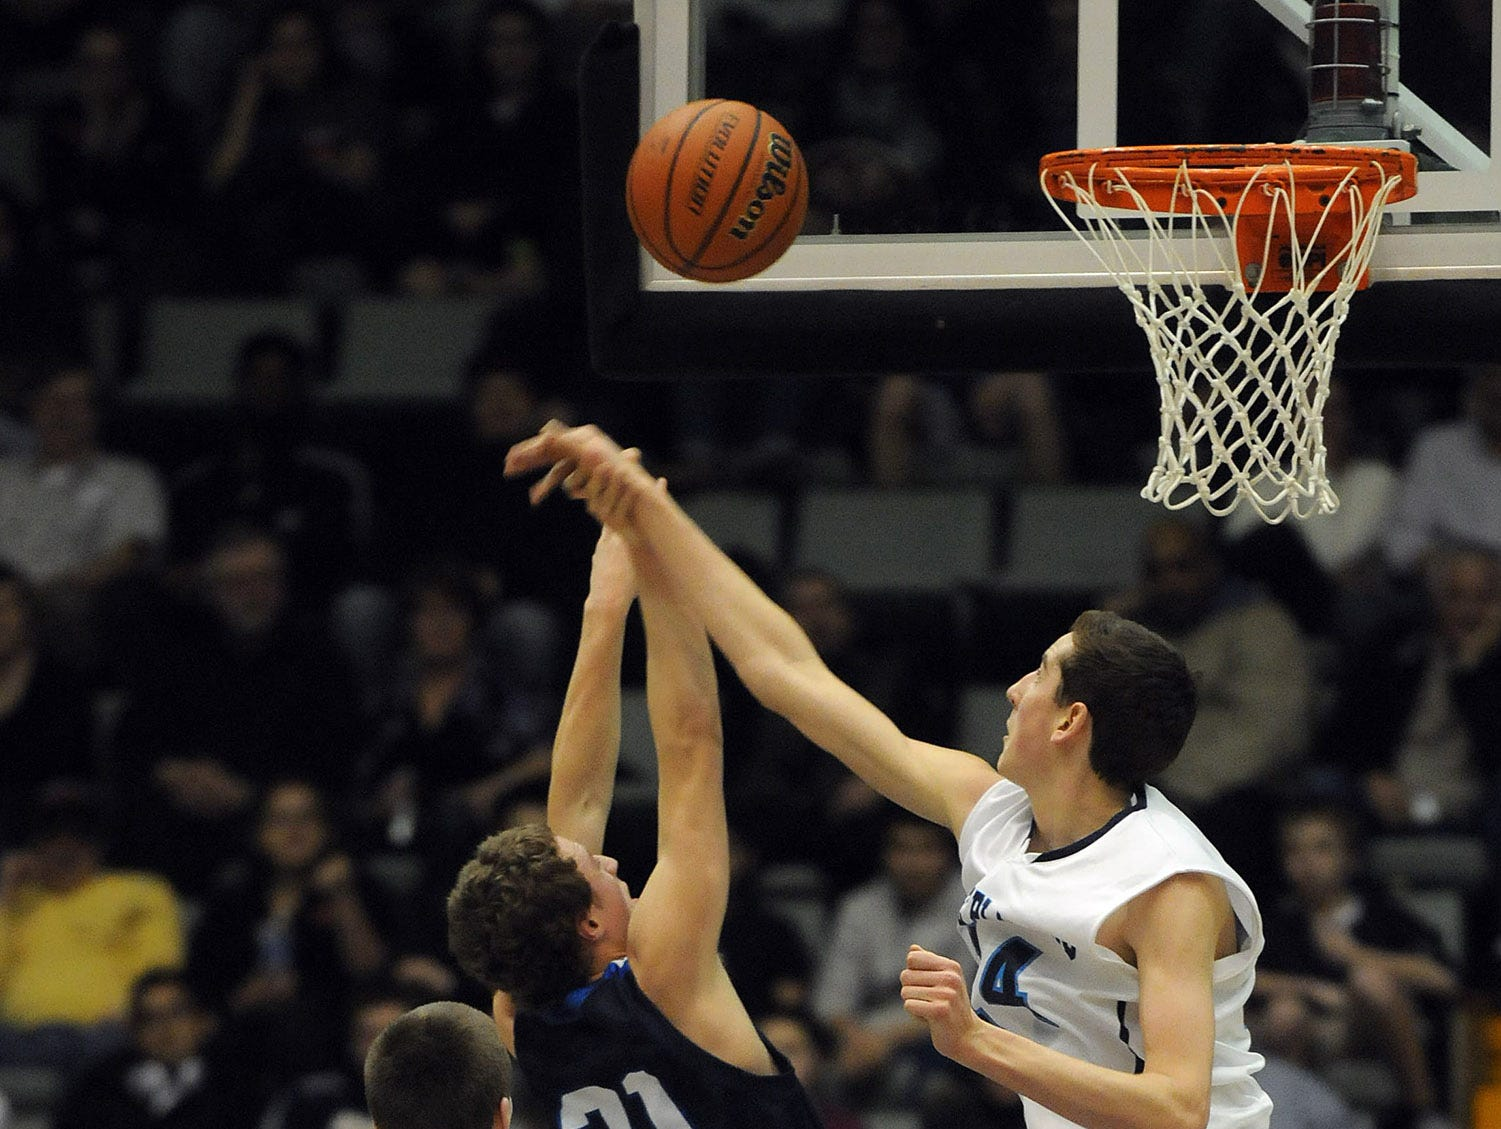 Pine Plains' Tyler Lydon blocks a shot by Lake George's Connor McCoy during the Class C state championship game on March 16, 2013 in Glens Falls.